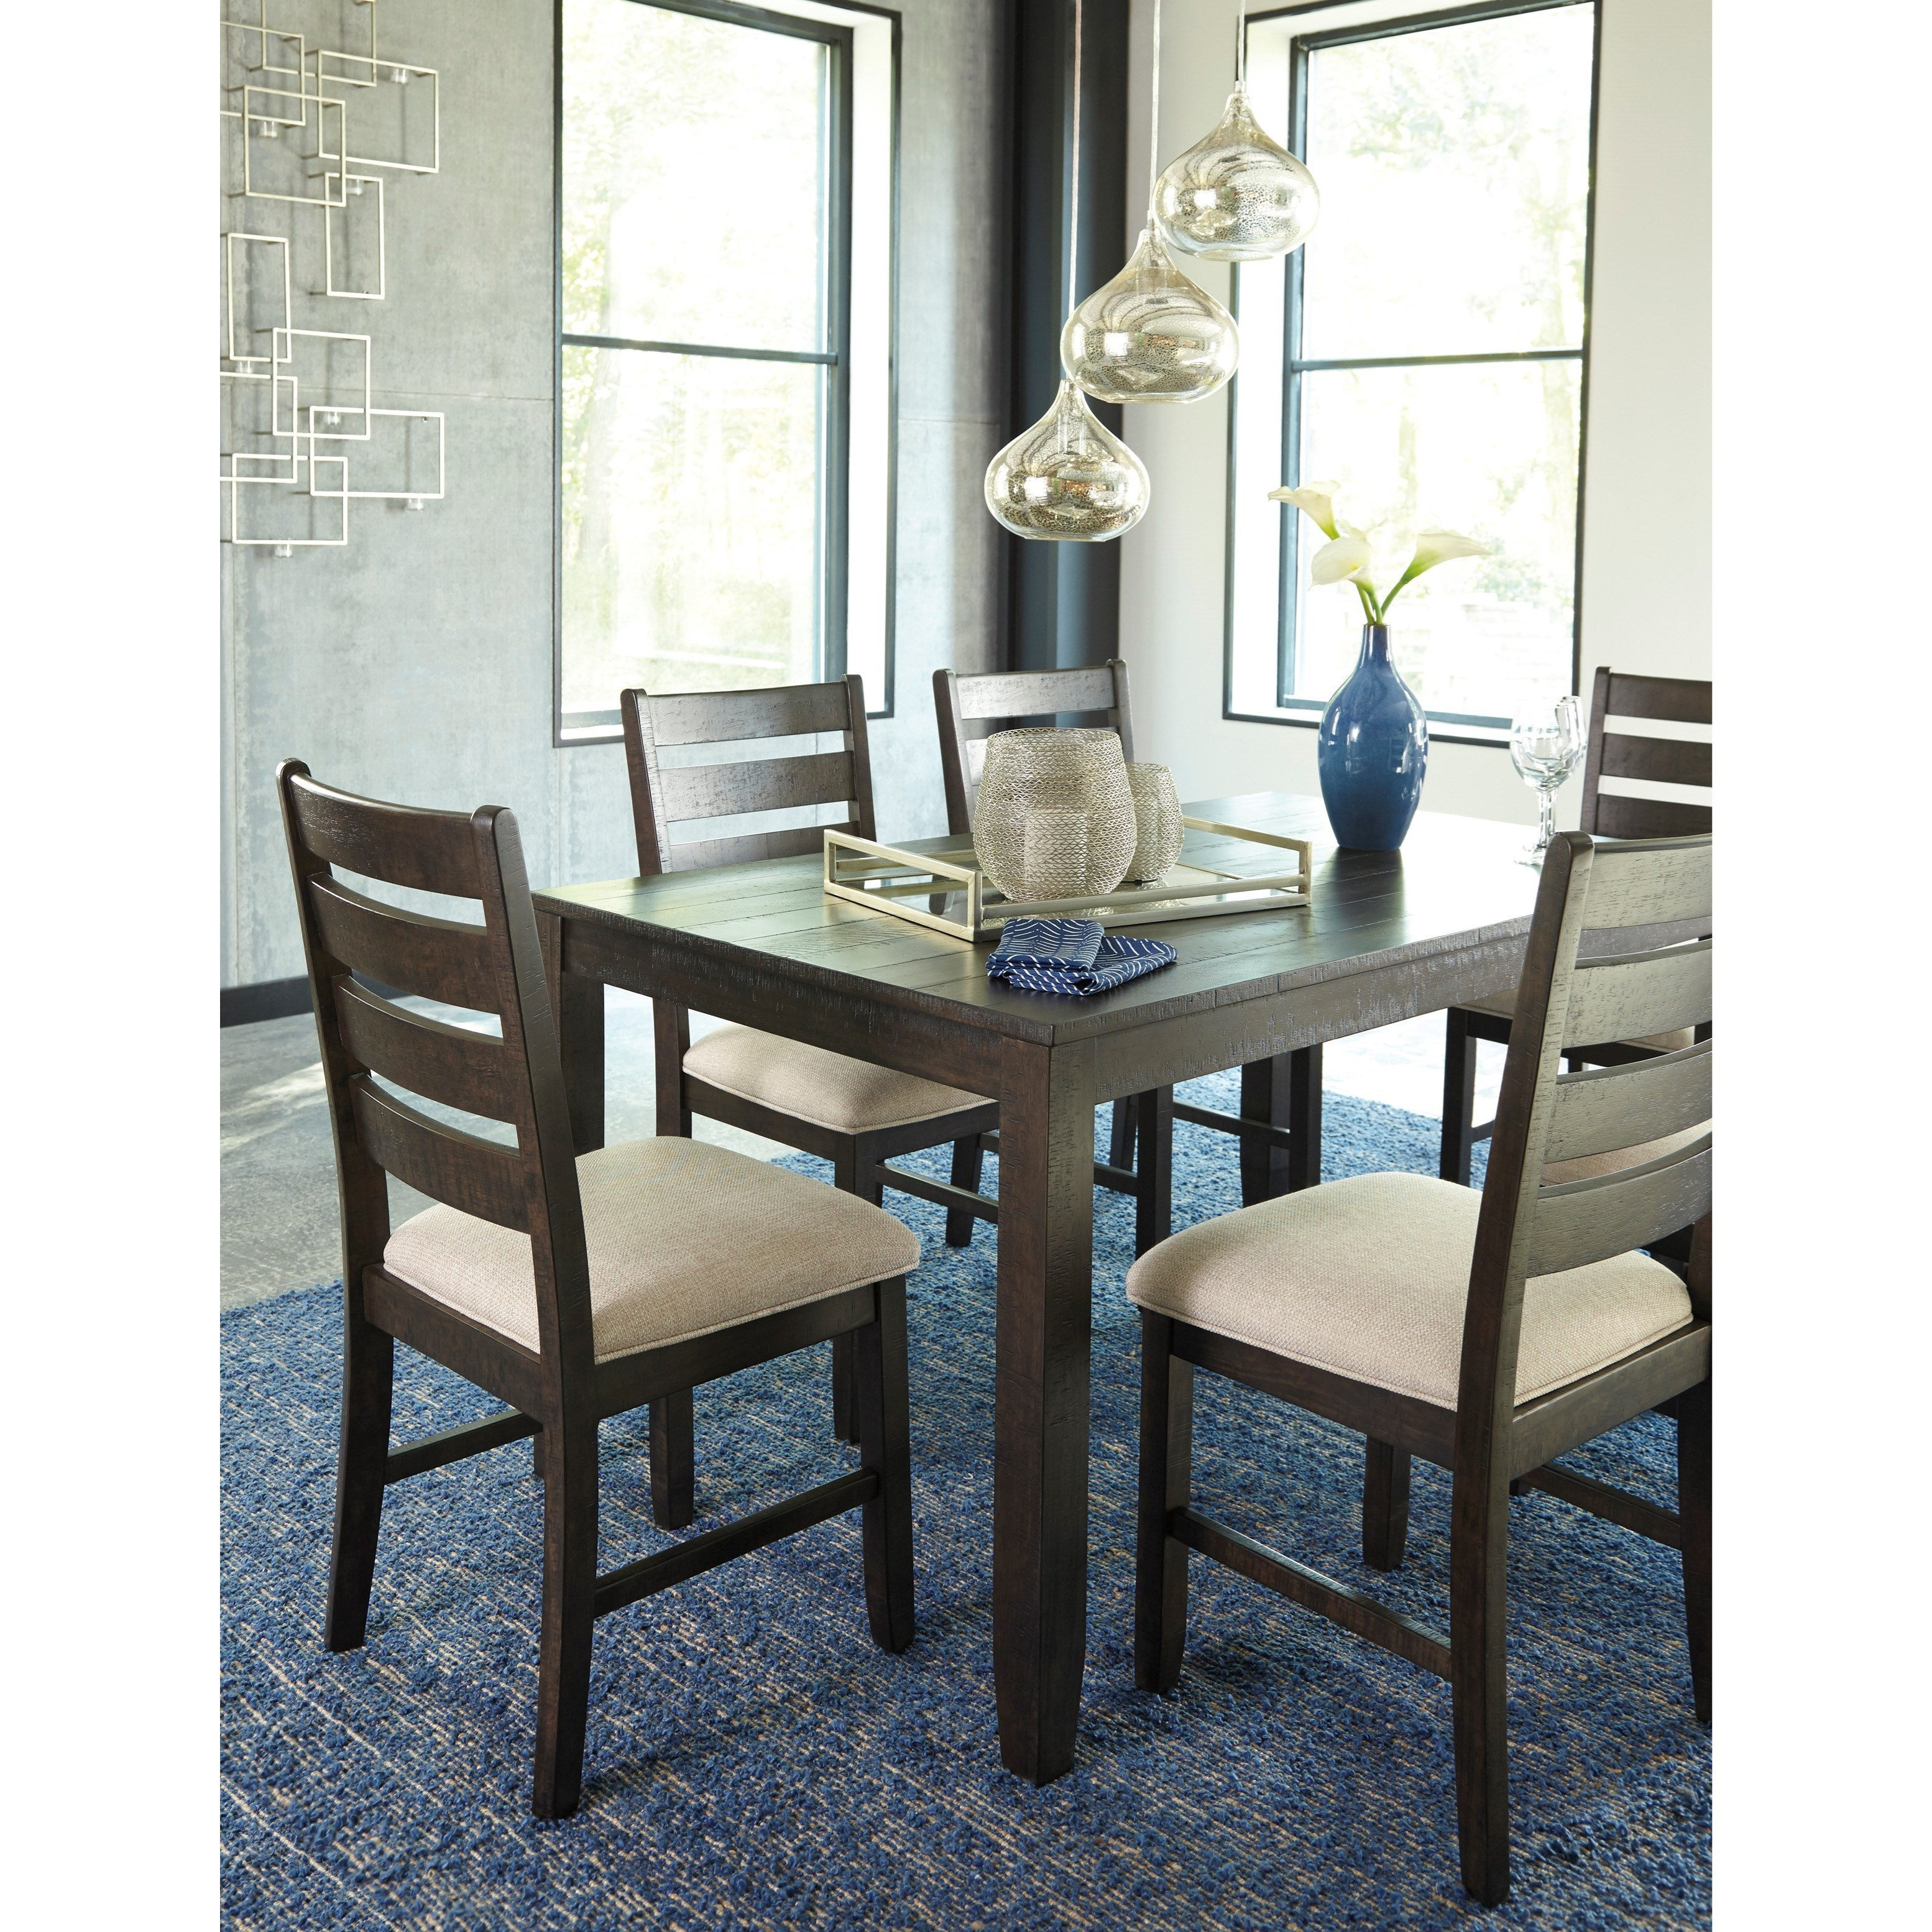 Ashley Furniture Dinette Set: Signature Design By Ashley Rokane Contemporary 7-Piece